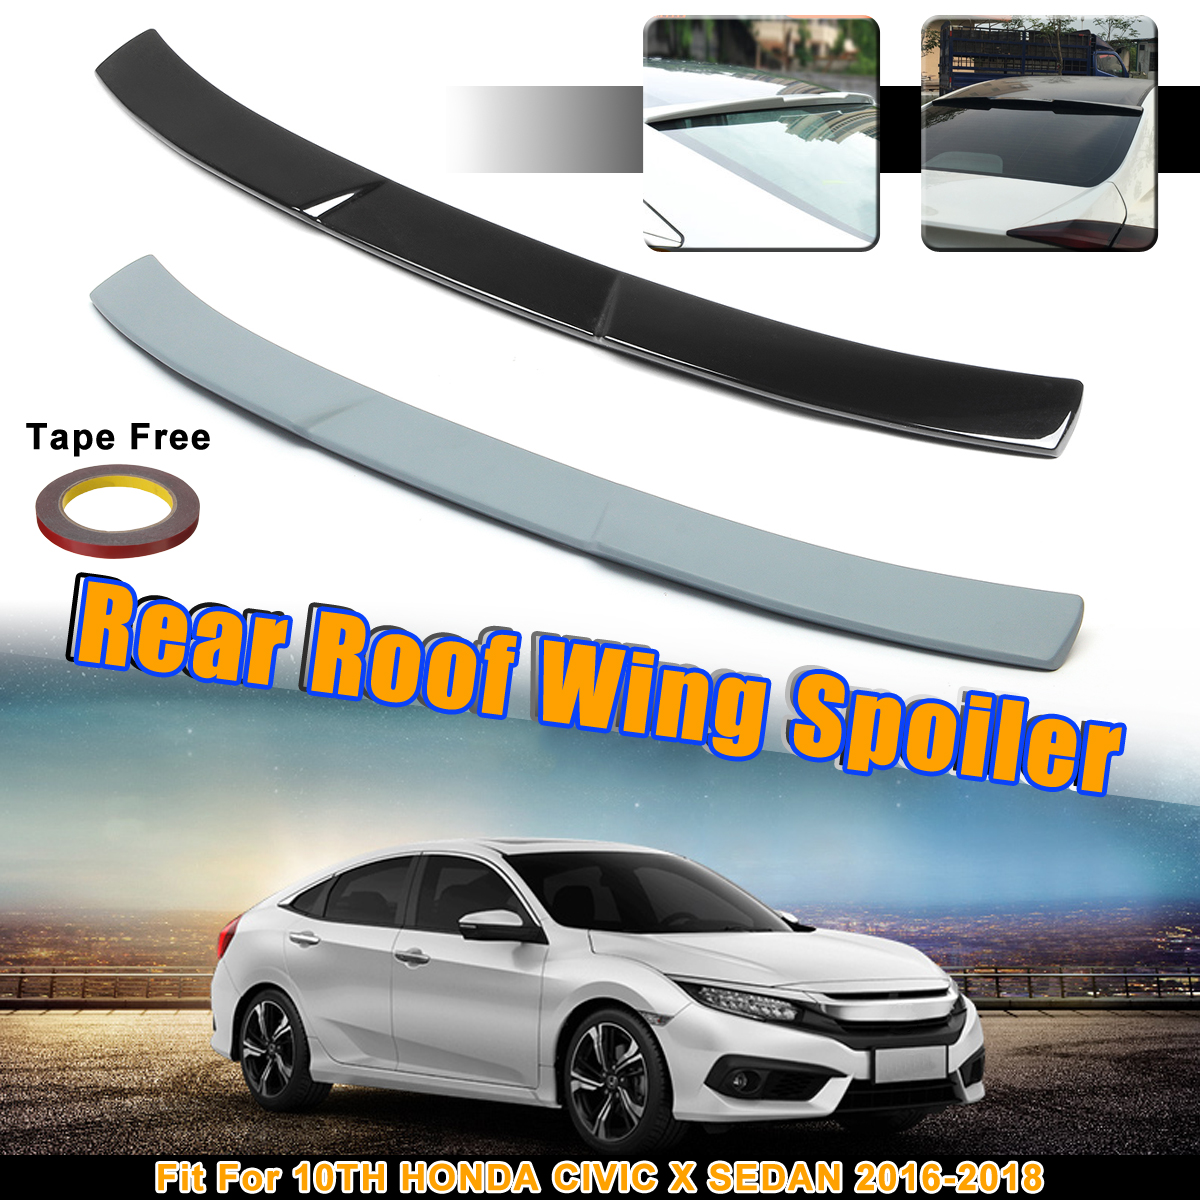 Unpainted Grey / Black ABS Rear Roof Wing Spoiler Lid Fit For HONDA For CIVIC X SEDAN 10TH 2016 2017 2018Unpainted Grey / Black ABS Rear Roof Wing Spoiler Lid Fit For HONDA For CIVIC X SEDAN 10TH 2016 2017 2018